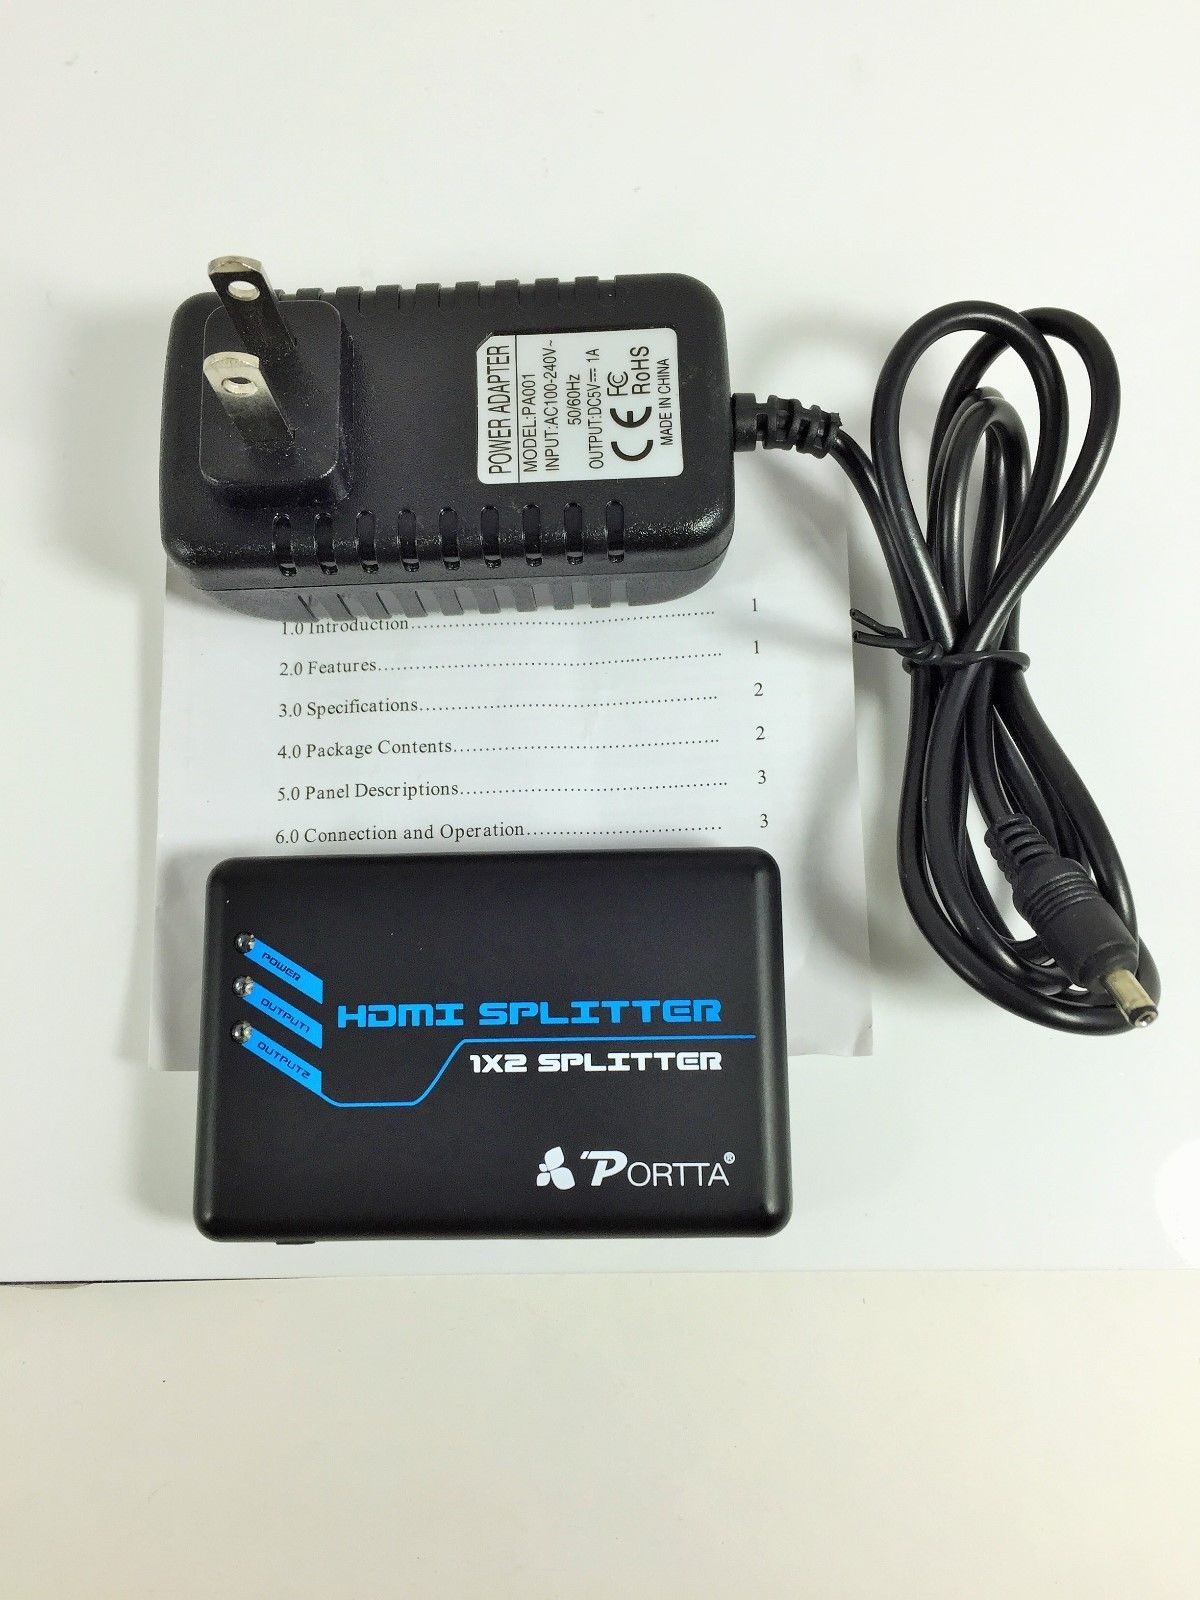 HDMI SPLITTER 1 X 2 with Power supply